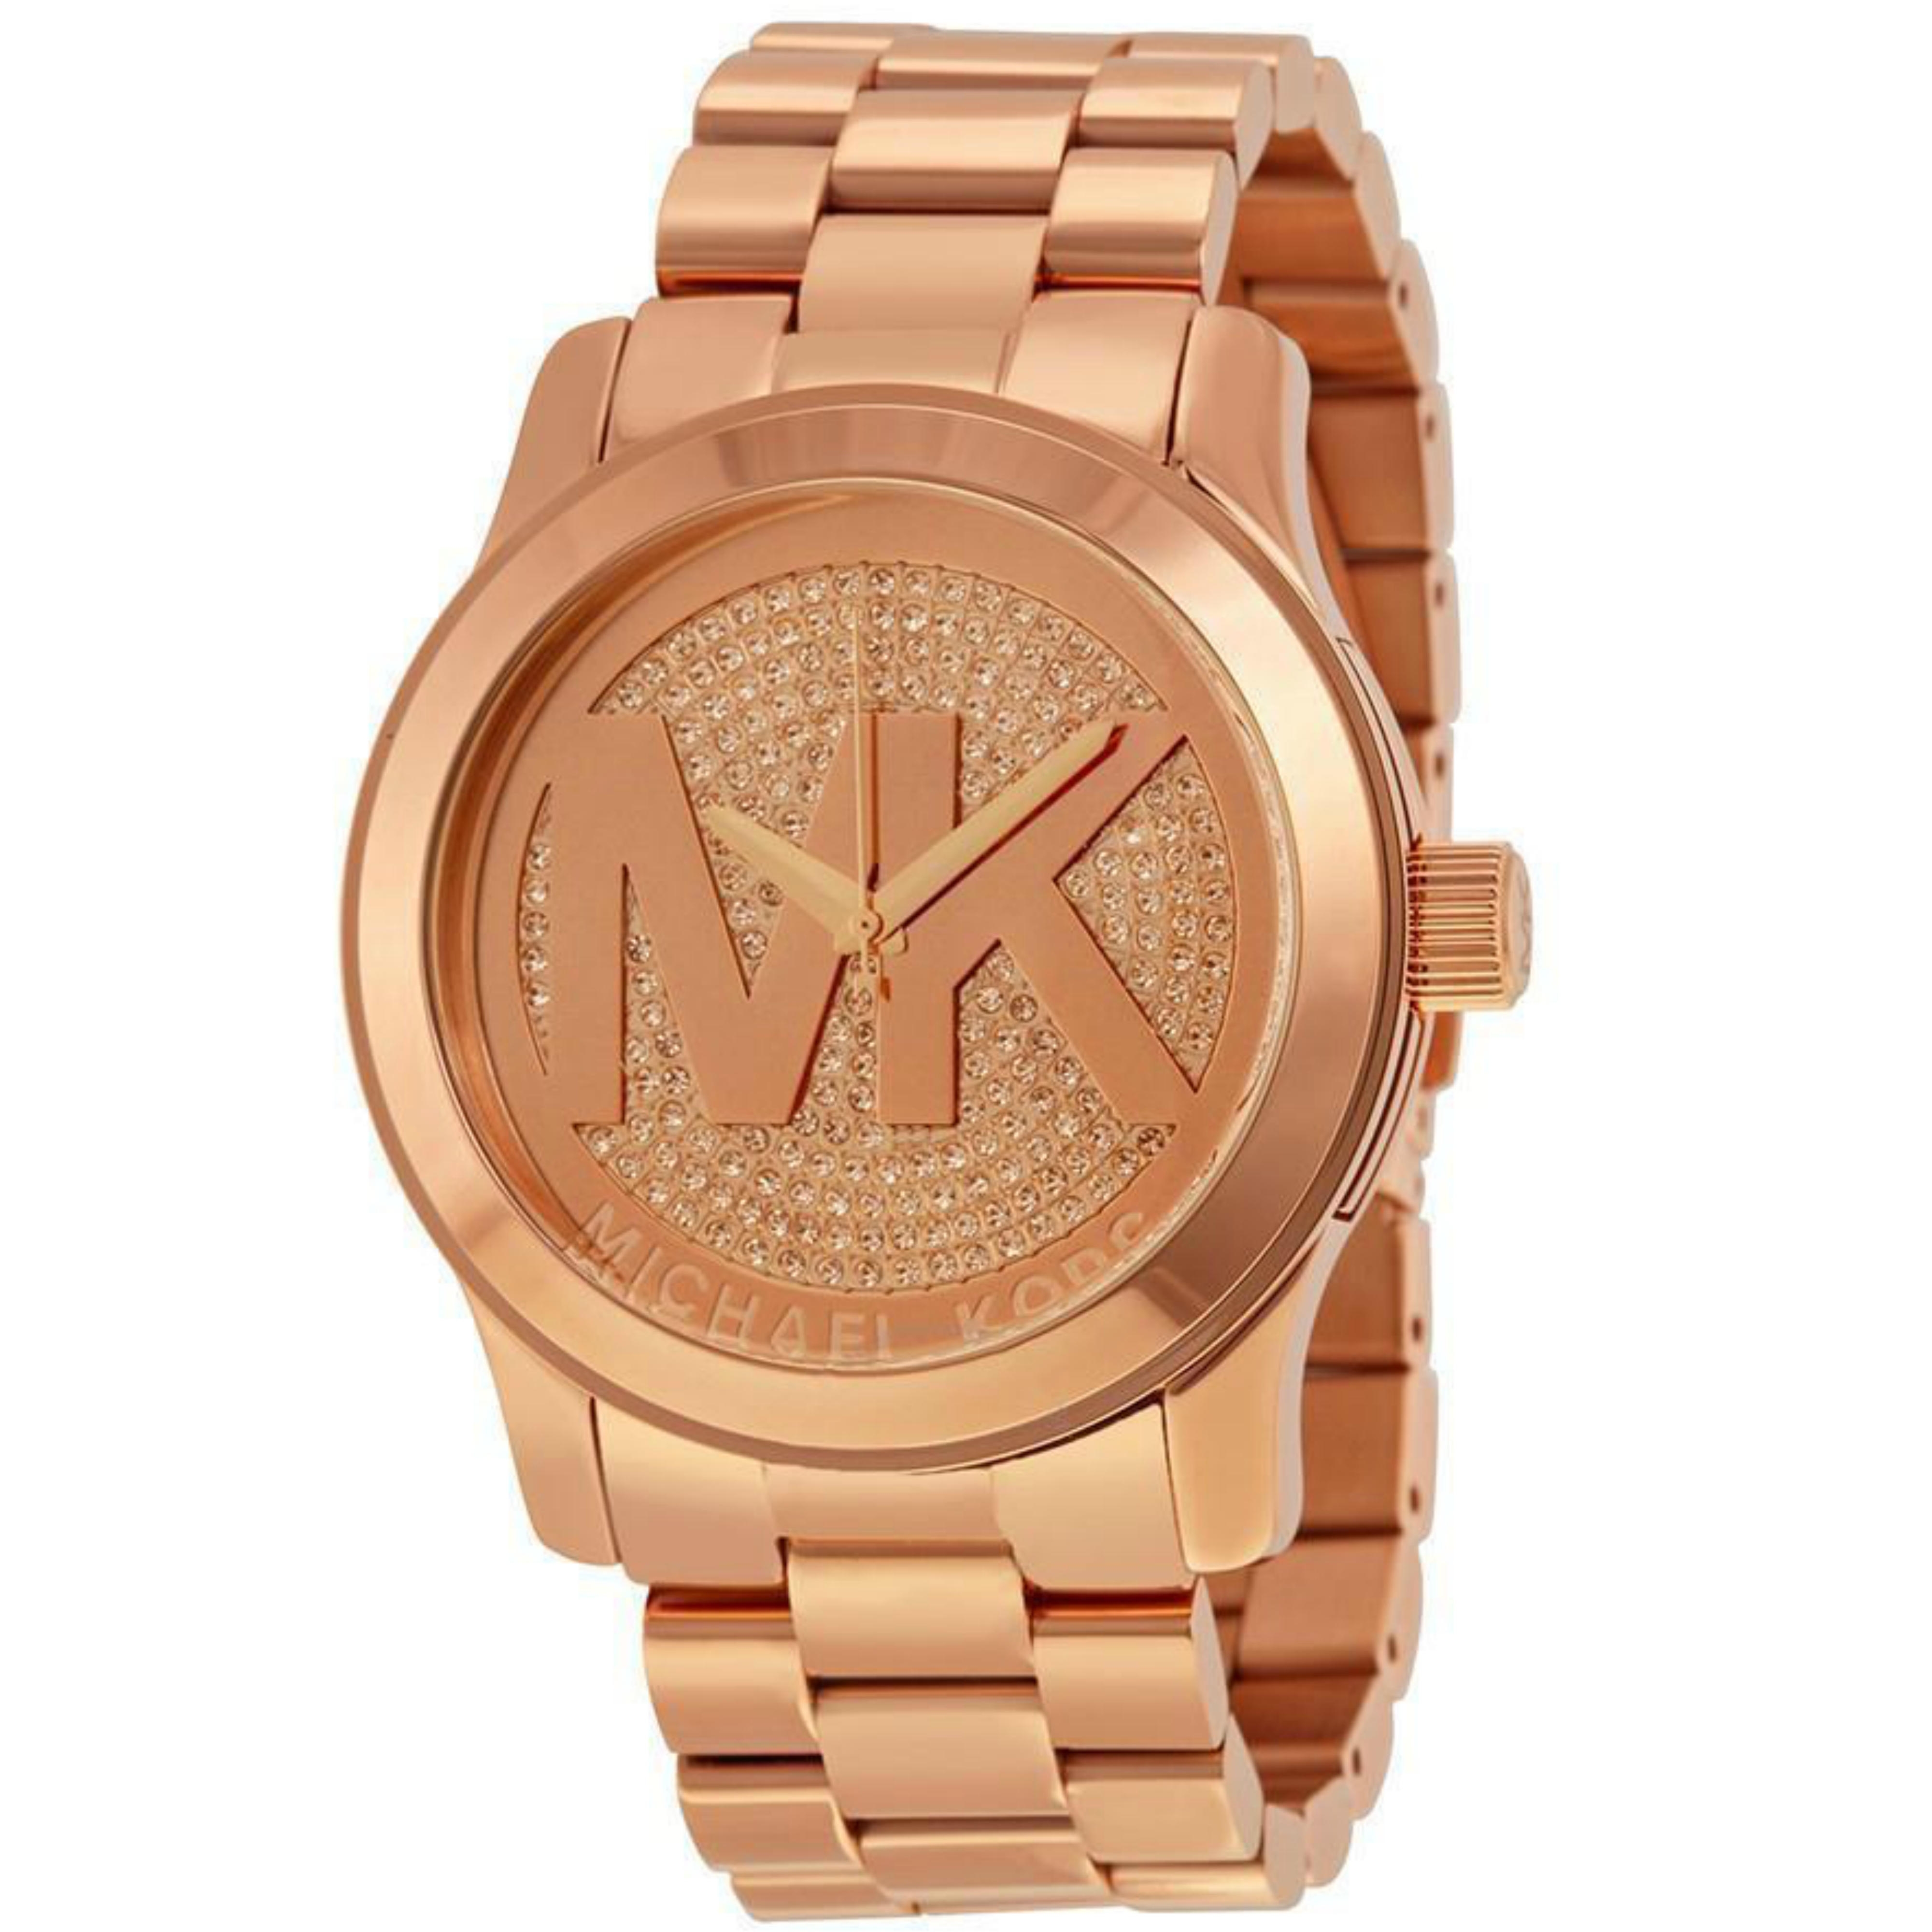 9df50bf06b2d Details about Michael Kors Ladies  Runway Oversize Logo Design Rose Gold  Daimond Watch MK5661